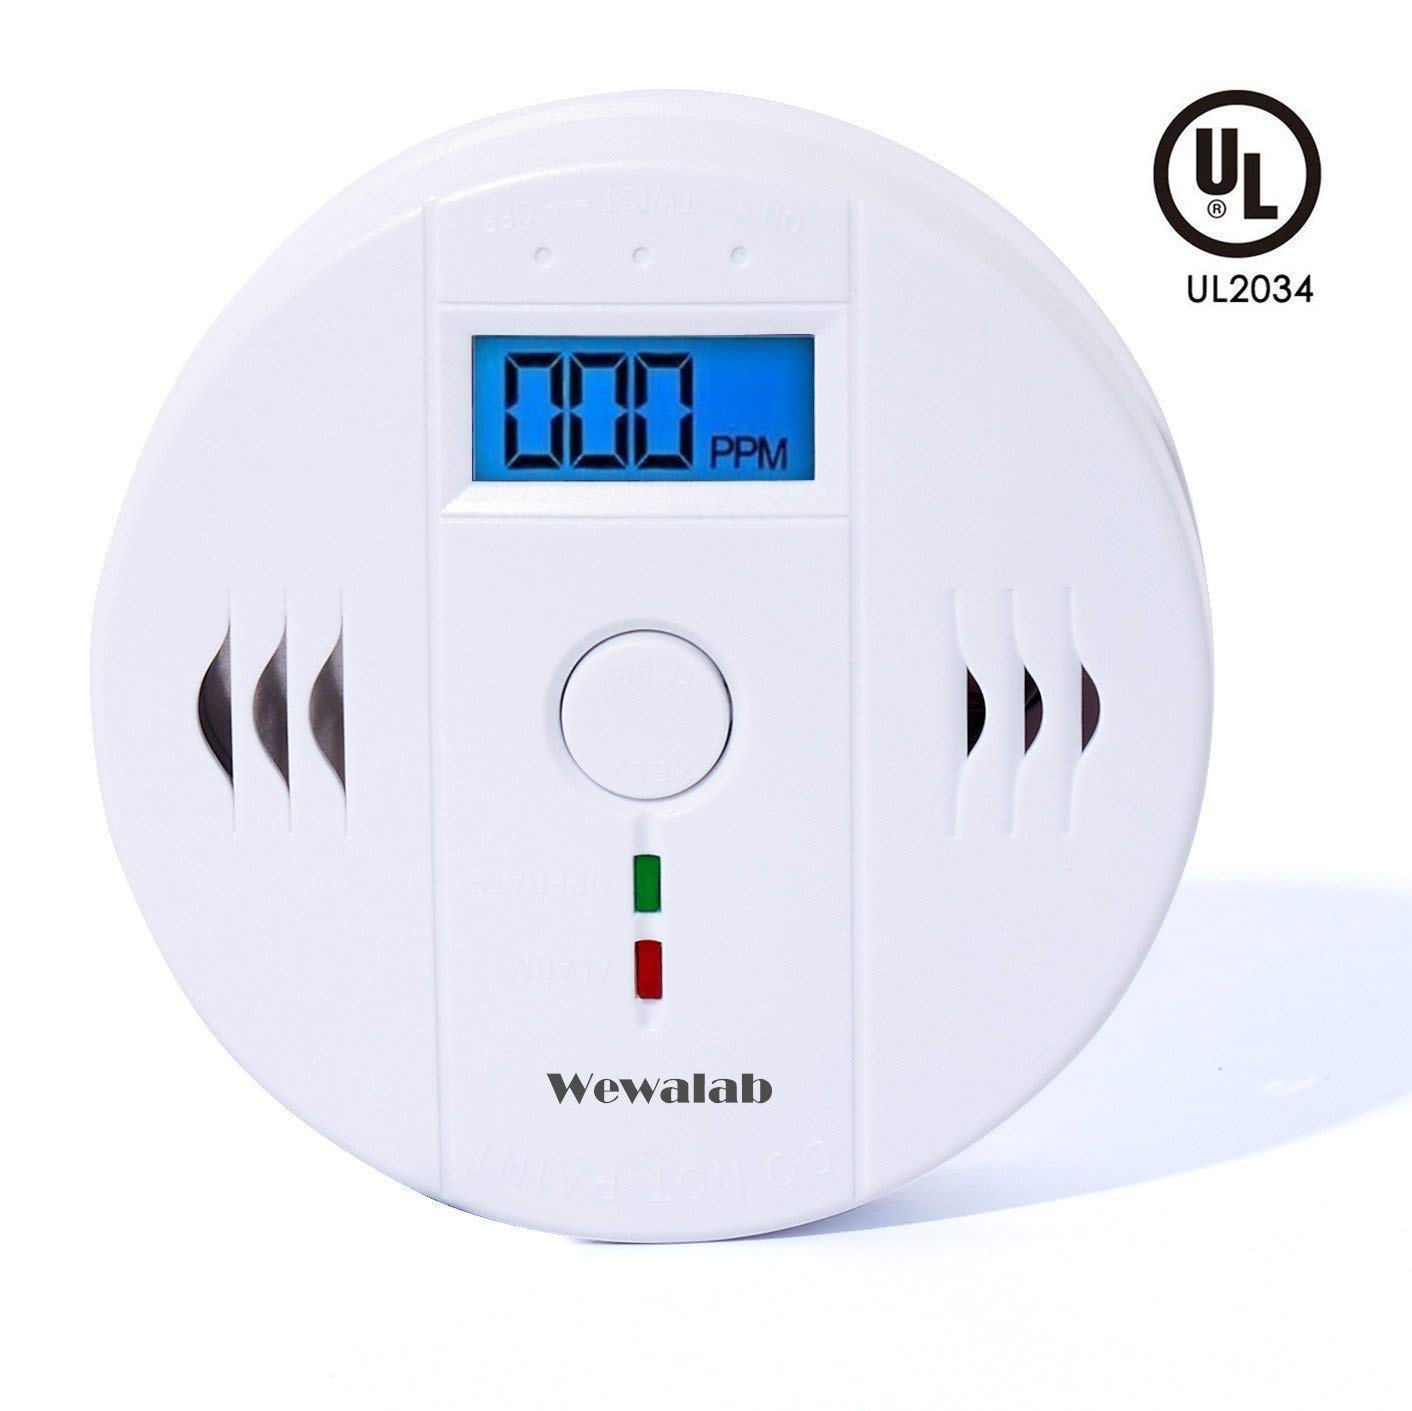 Back To Search Resultssecurity & Protection 2 In 1 Co Smoke Detector Led Display Alarm Carbon Monoxide Leakage Sensor Smart Human Voice Lcd Display High Reliability New More Discounts Surprises